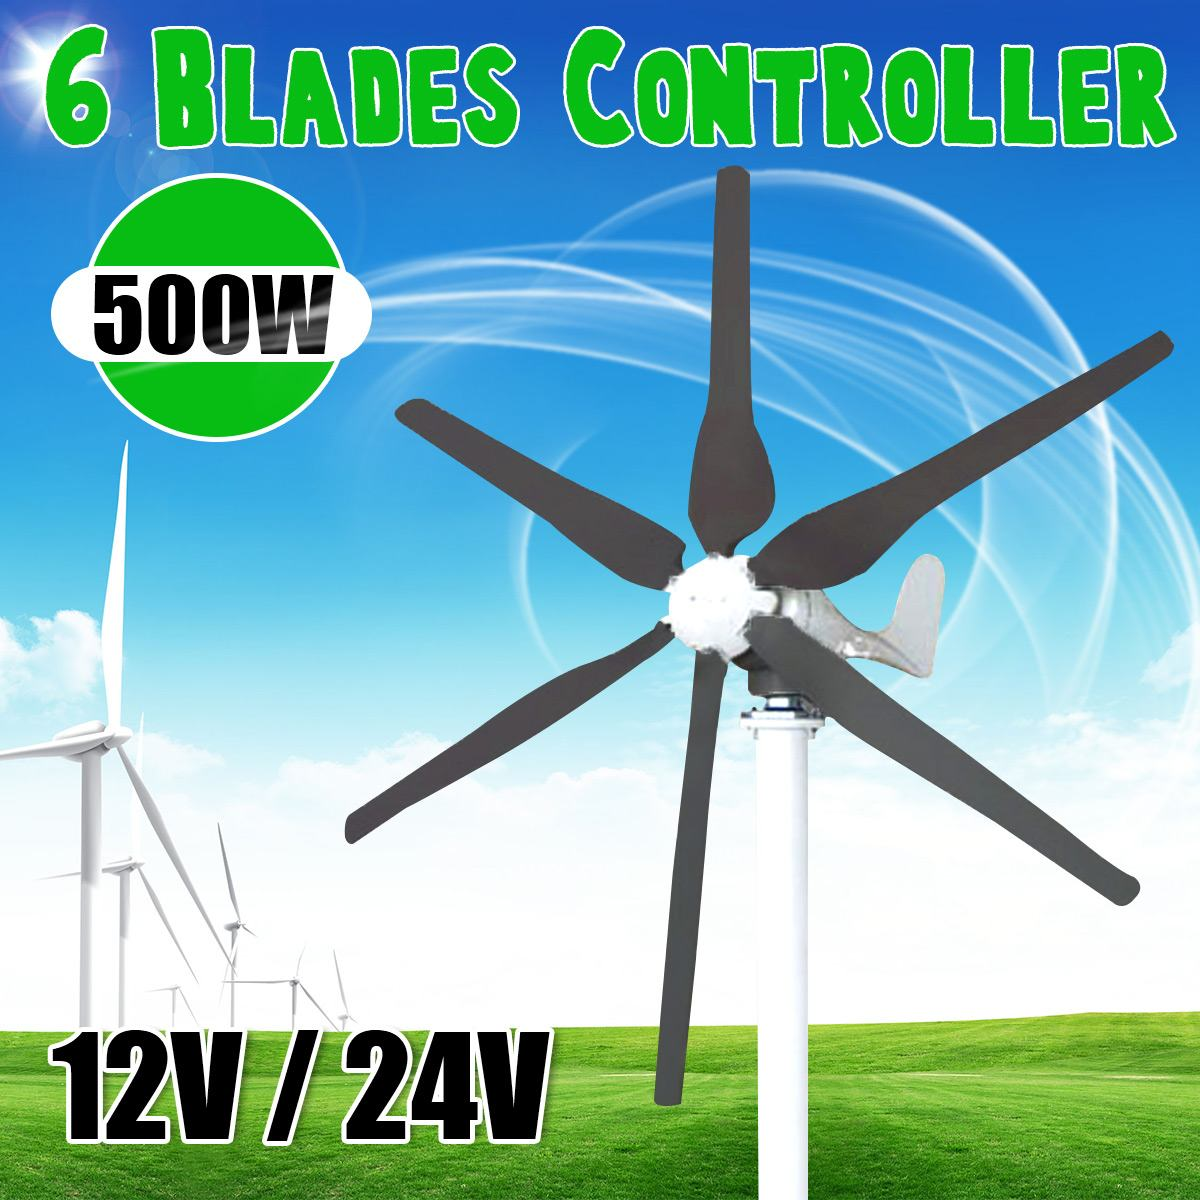 500W Wind Generator 6 Blades Wind Power Turbines Windmill Energy Miniature with Controller for Home Or Camping500W Wind Generator 6 Blades Wind Power Turbines Windmill Energy Miniature with Controller for Home Or Camping